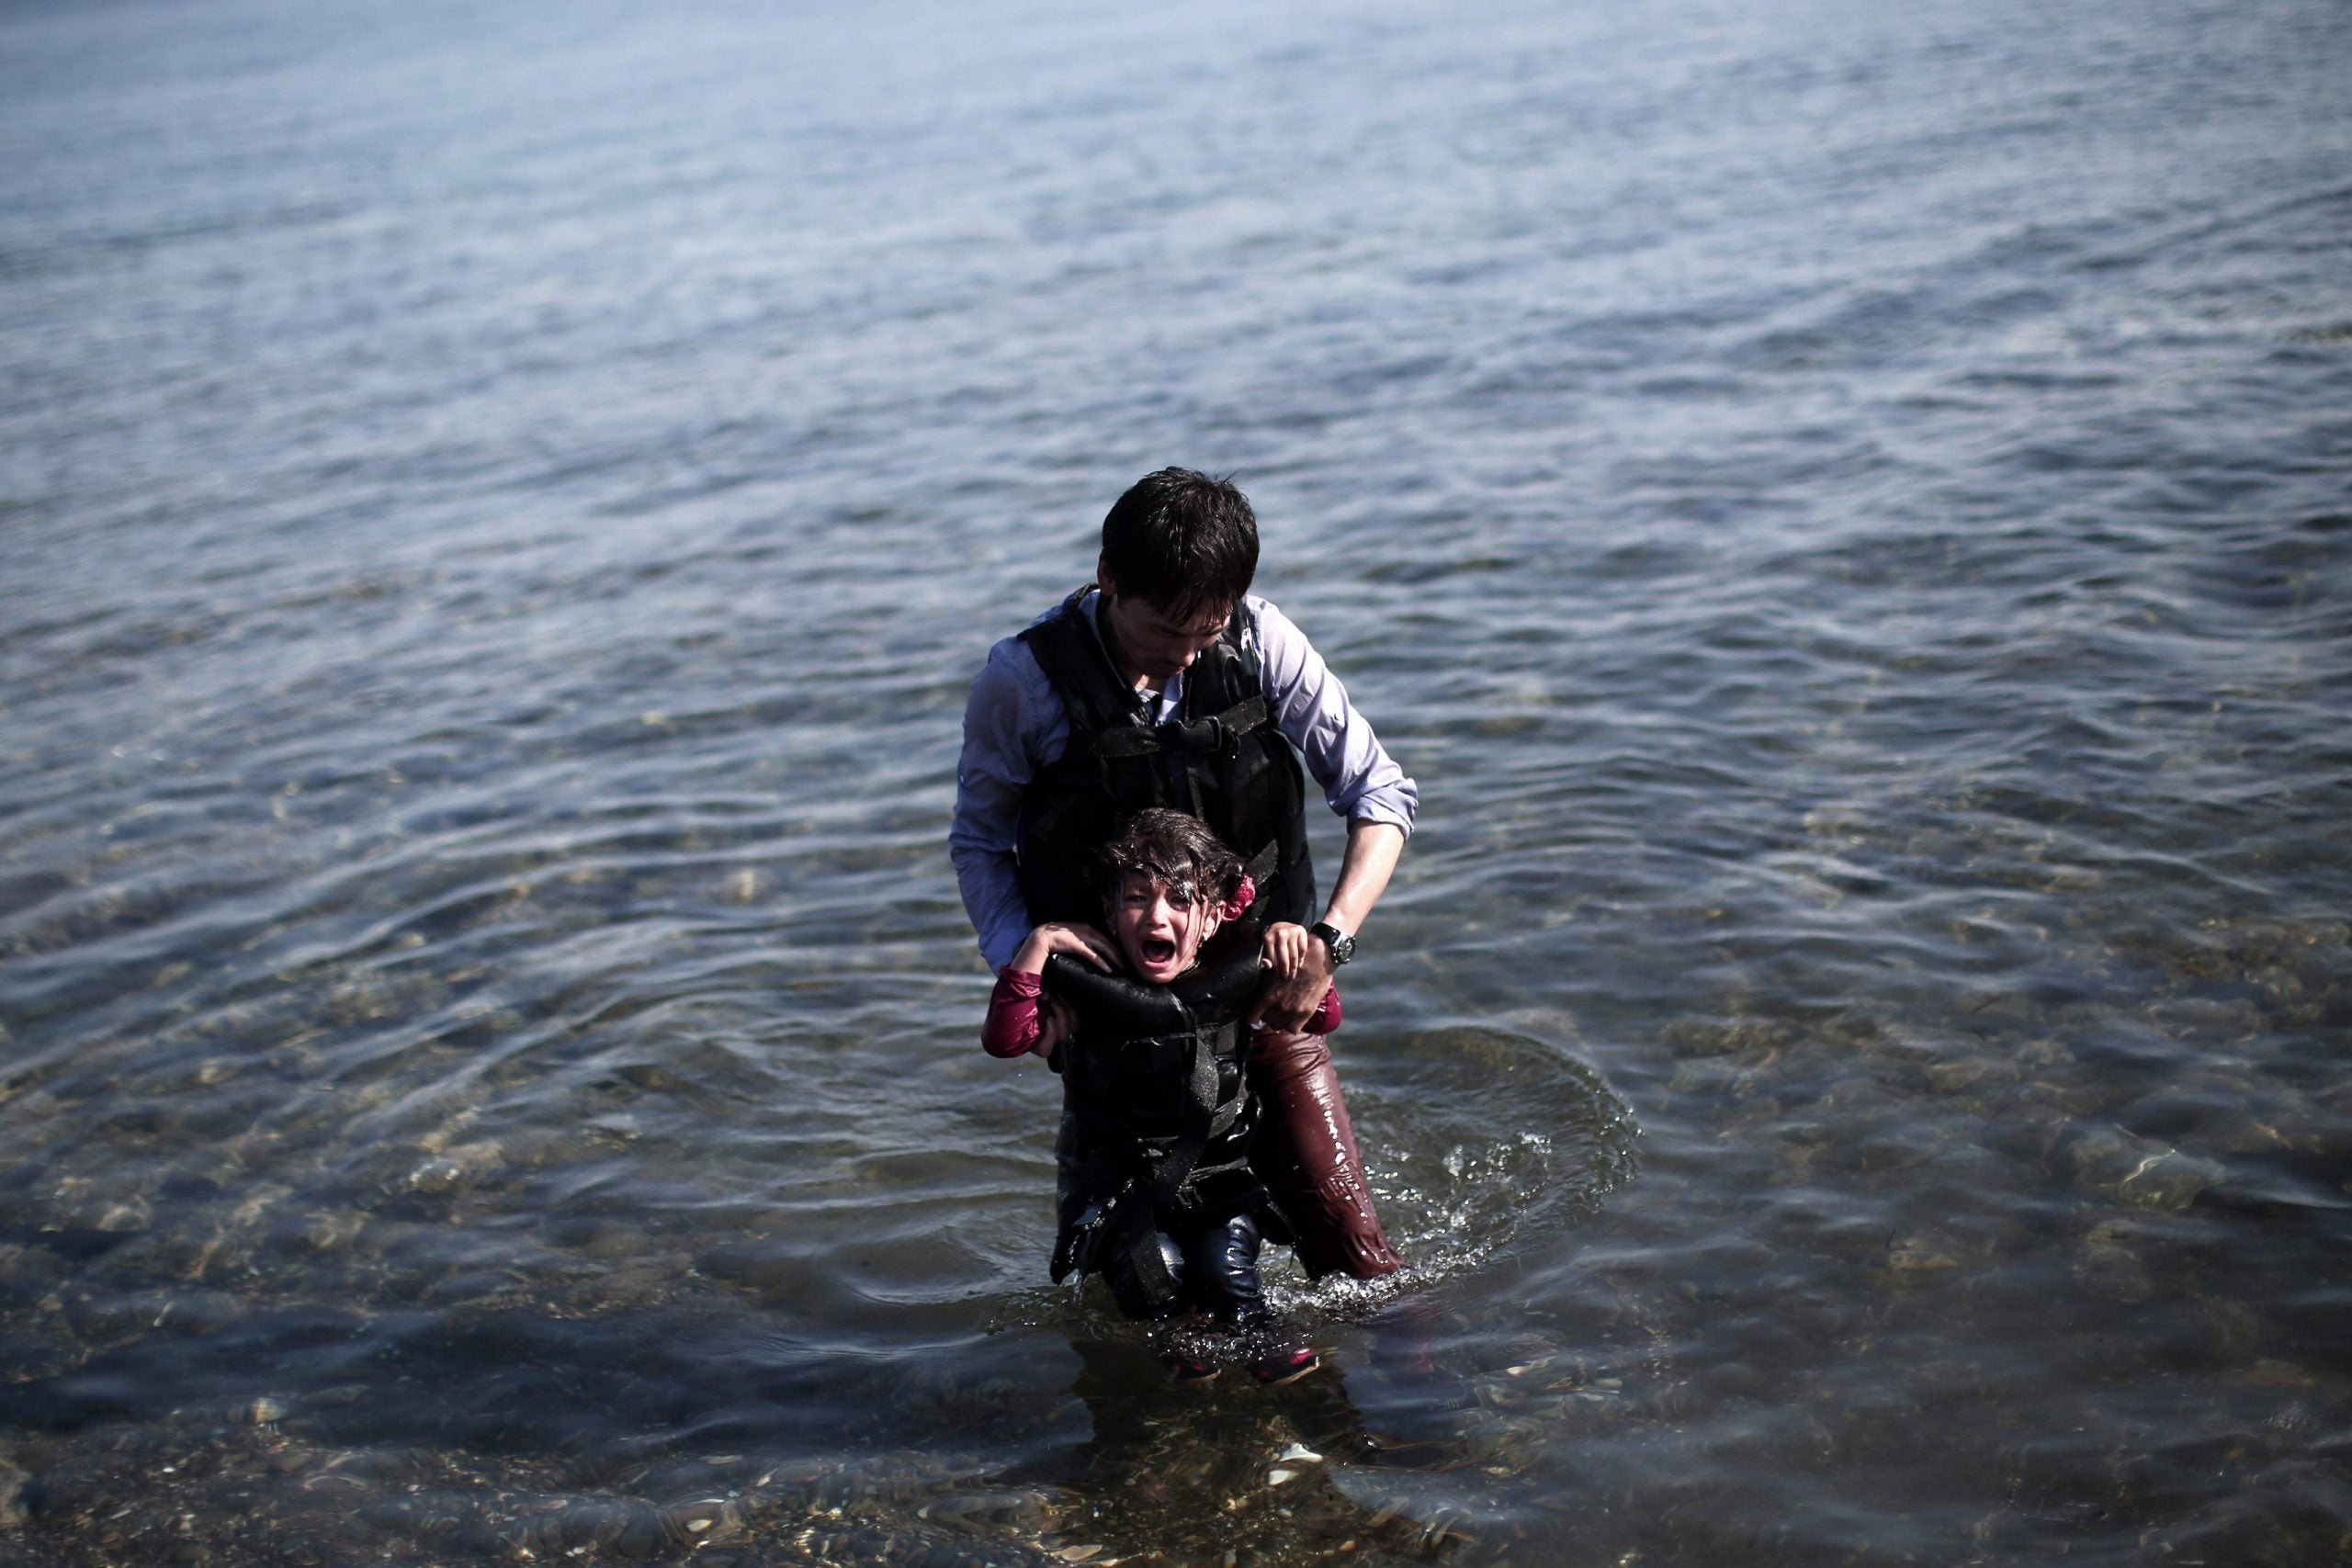 How did it become acceptable for Britain to treat refugees so badly?